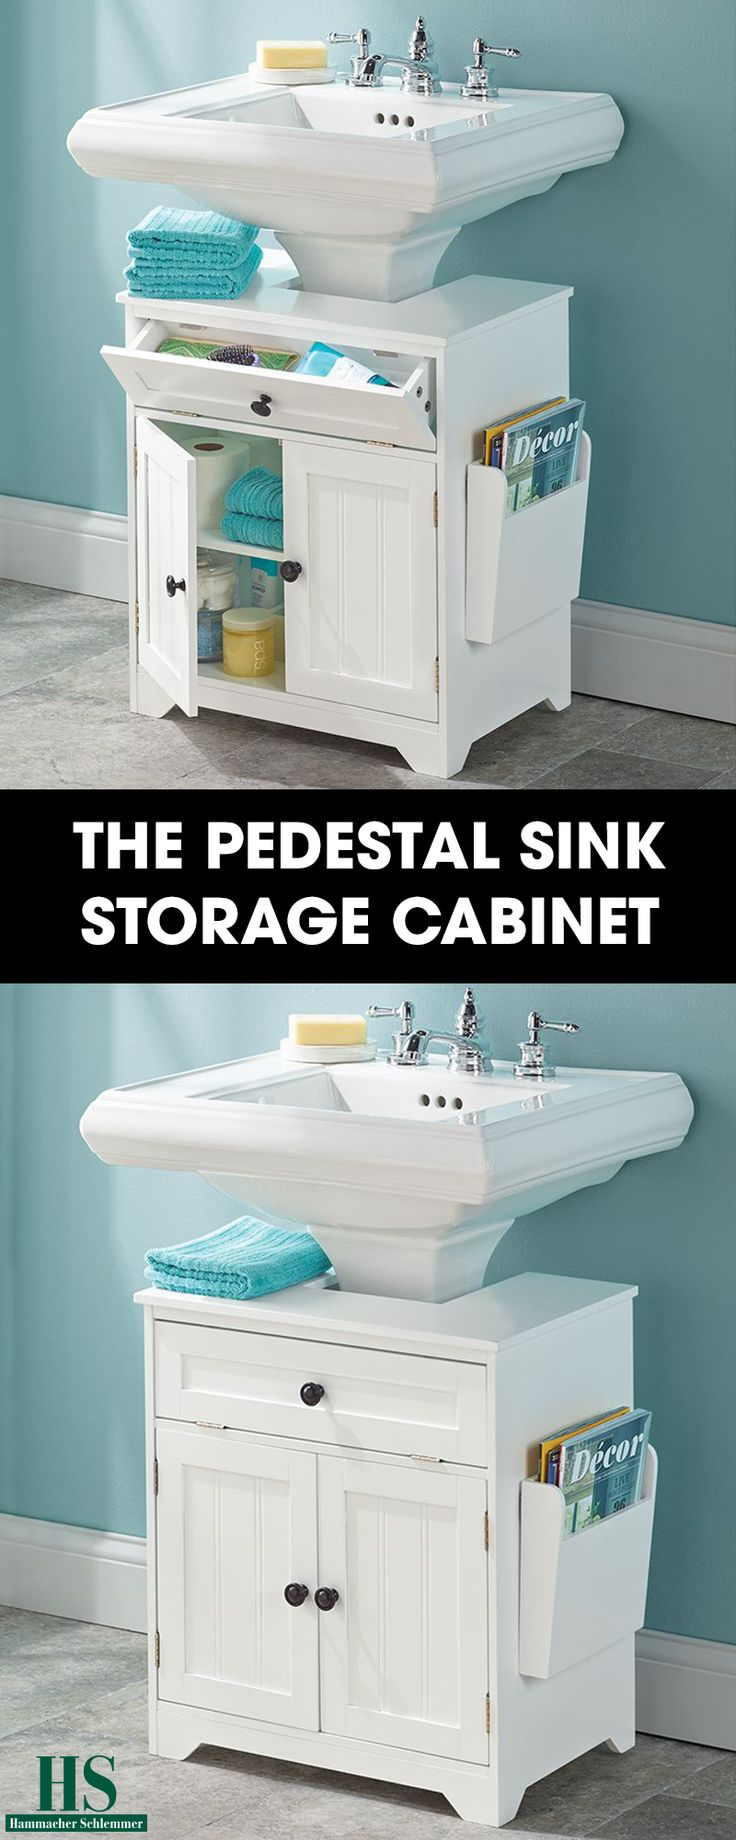 "The Pedestal Sink Storage Cabinet - This is the bathroom cabinet that surrounds a pedestal sink to provide extra storage and organization. Developed exclusively by Hammacher Schlemmer, it converts any pedestal sink into a storage-friendly vanity with an 8 1/2"" D x 8 1/4"" W opening that comfortably nestles around a standard pedestal base."